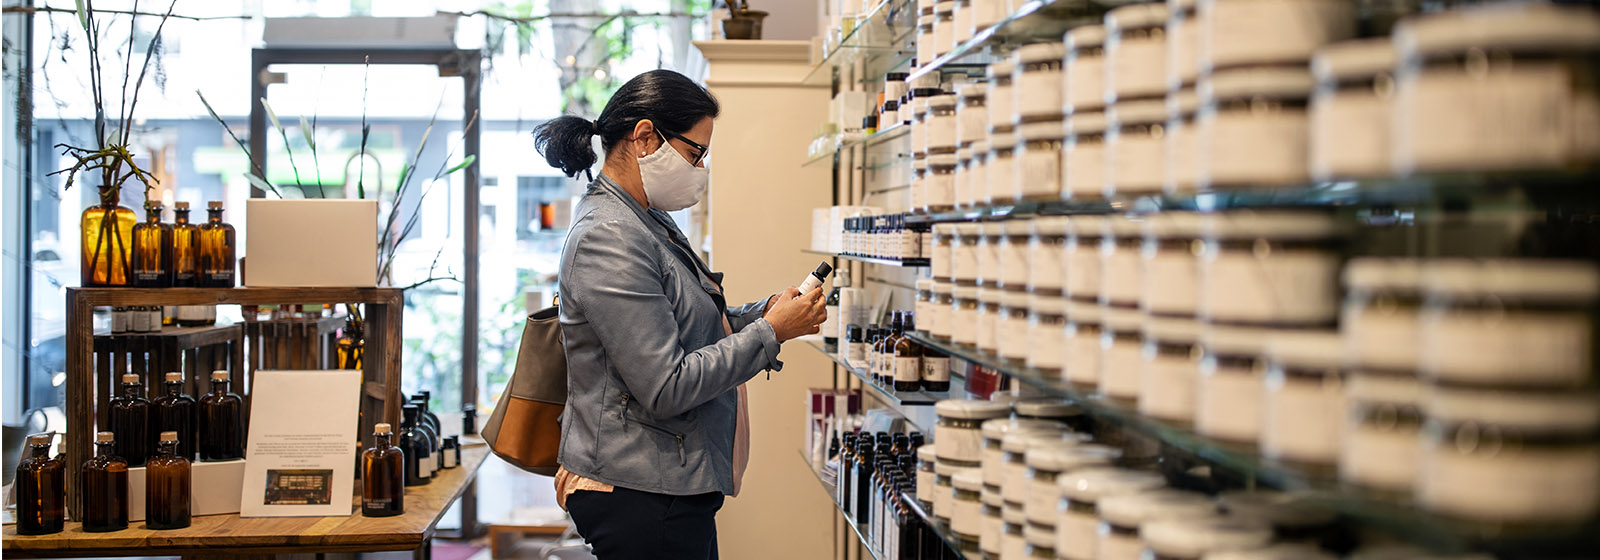 masked woman shopping in store